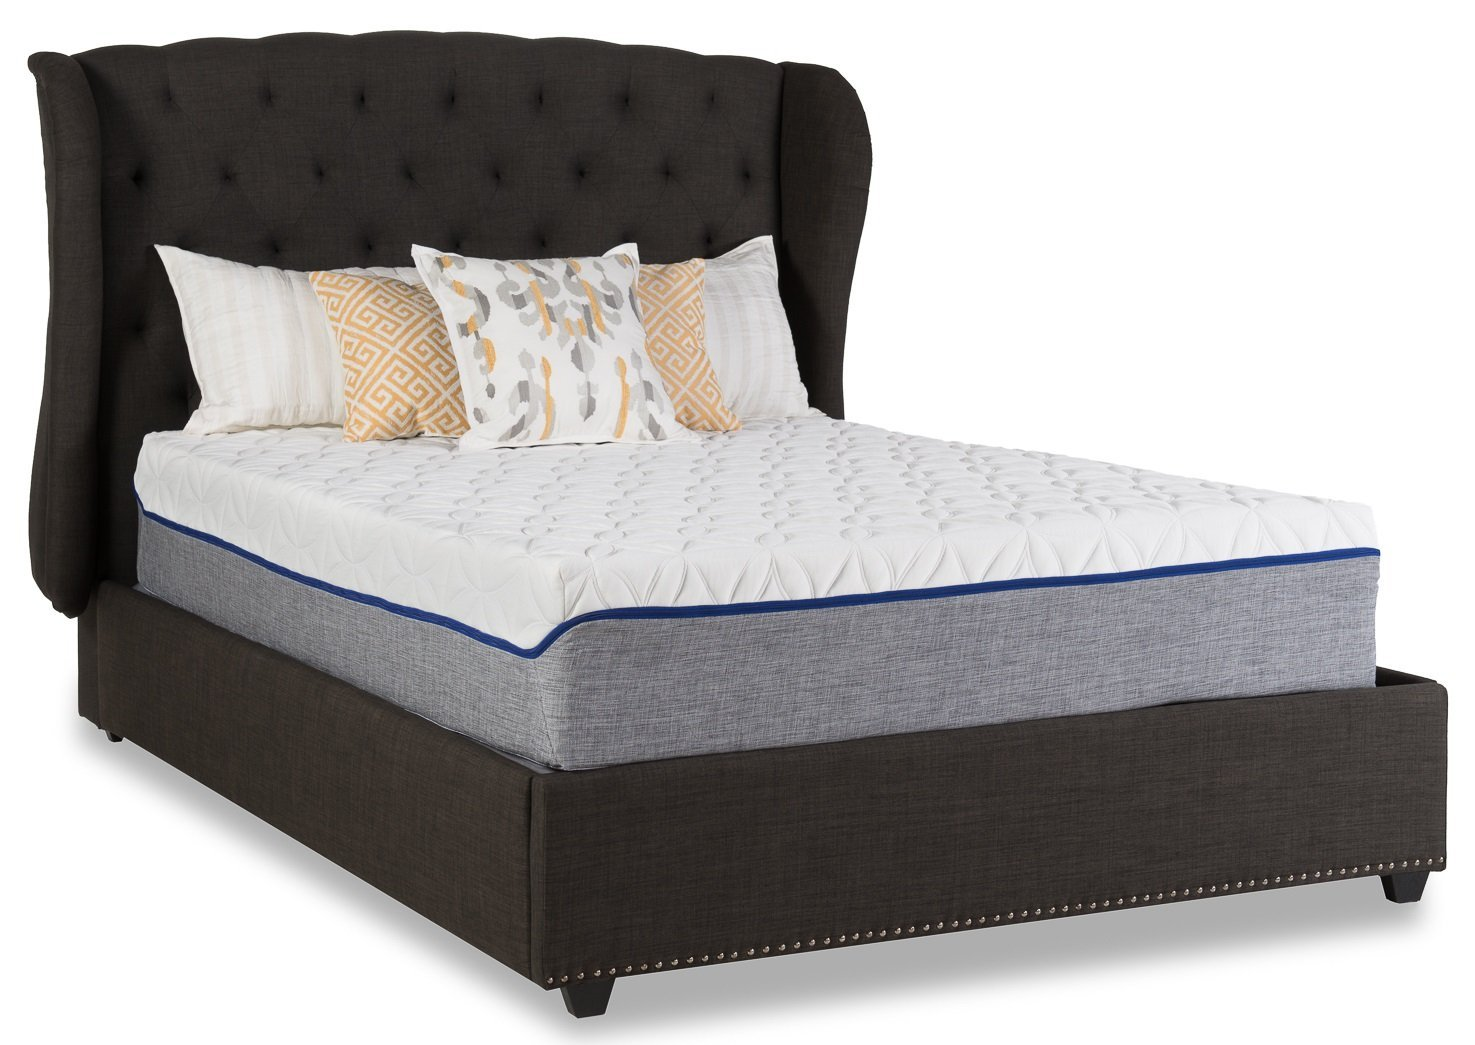 chandler inch of topper unique king top foam dining mattress magic less xl pillow for breeze gel memory kitchen unforeseen rare twin cool snapshot dynastymattress awesome double furniture s simple az eggshell amazon new gallery dazzling com pad shining search